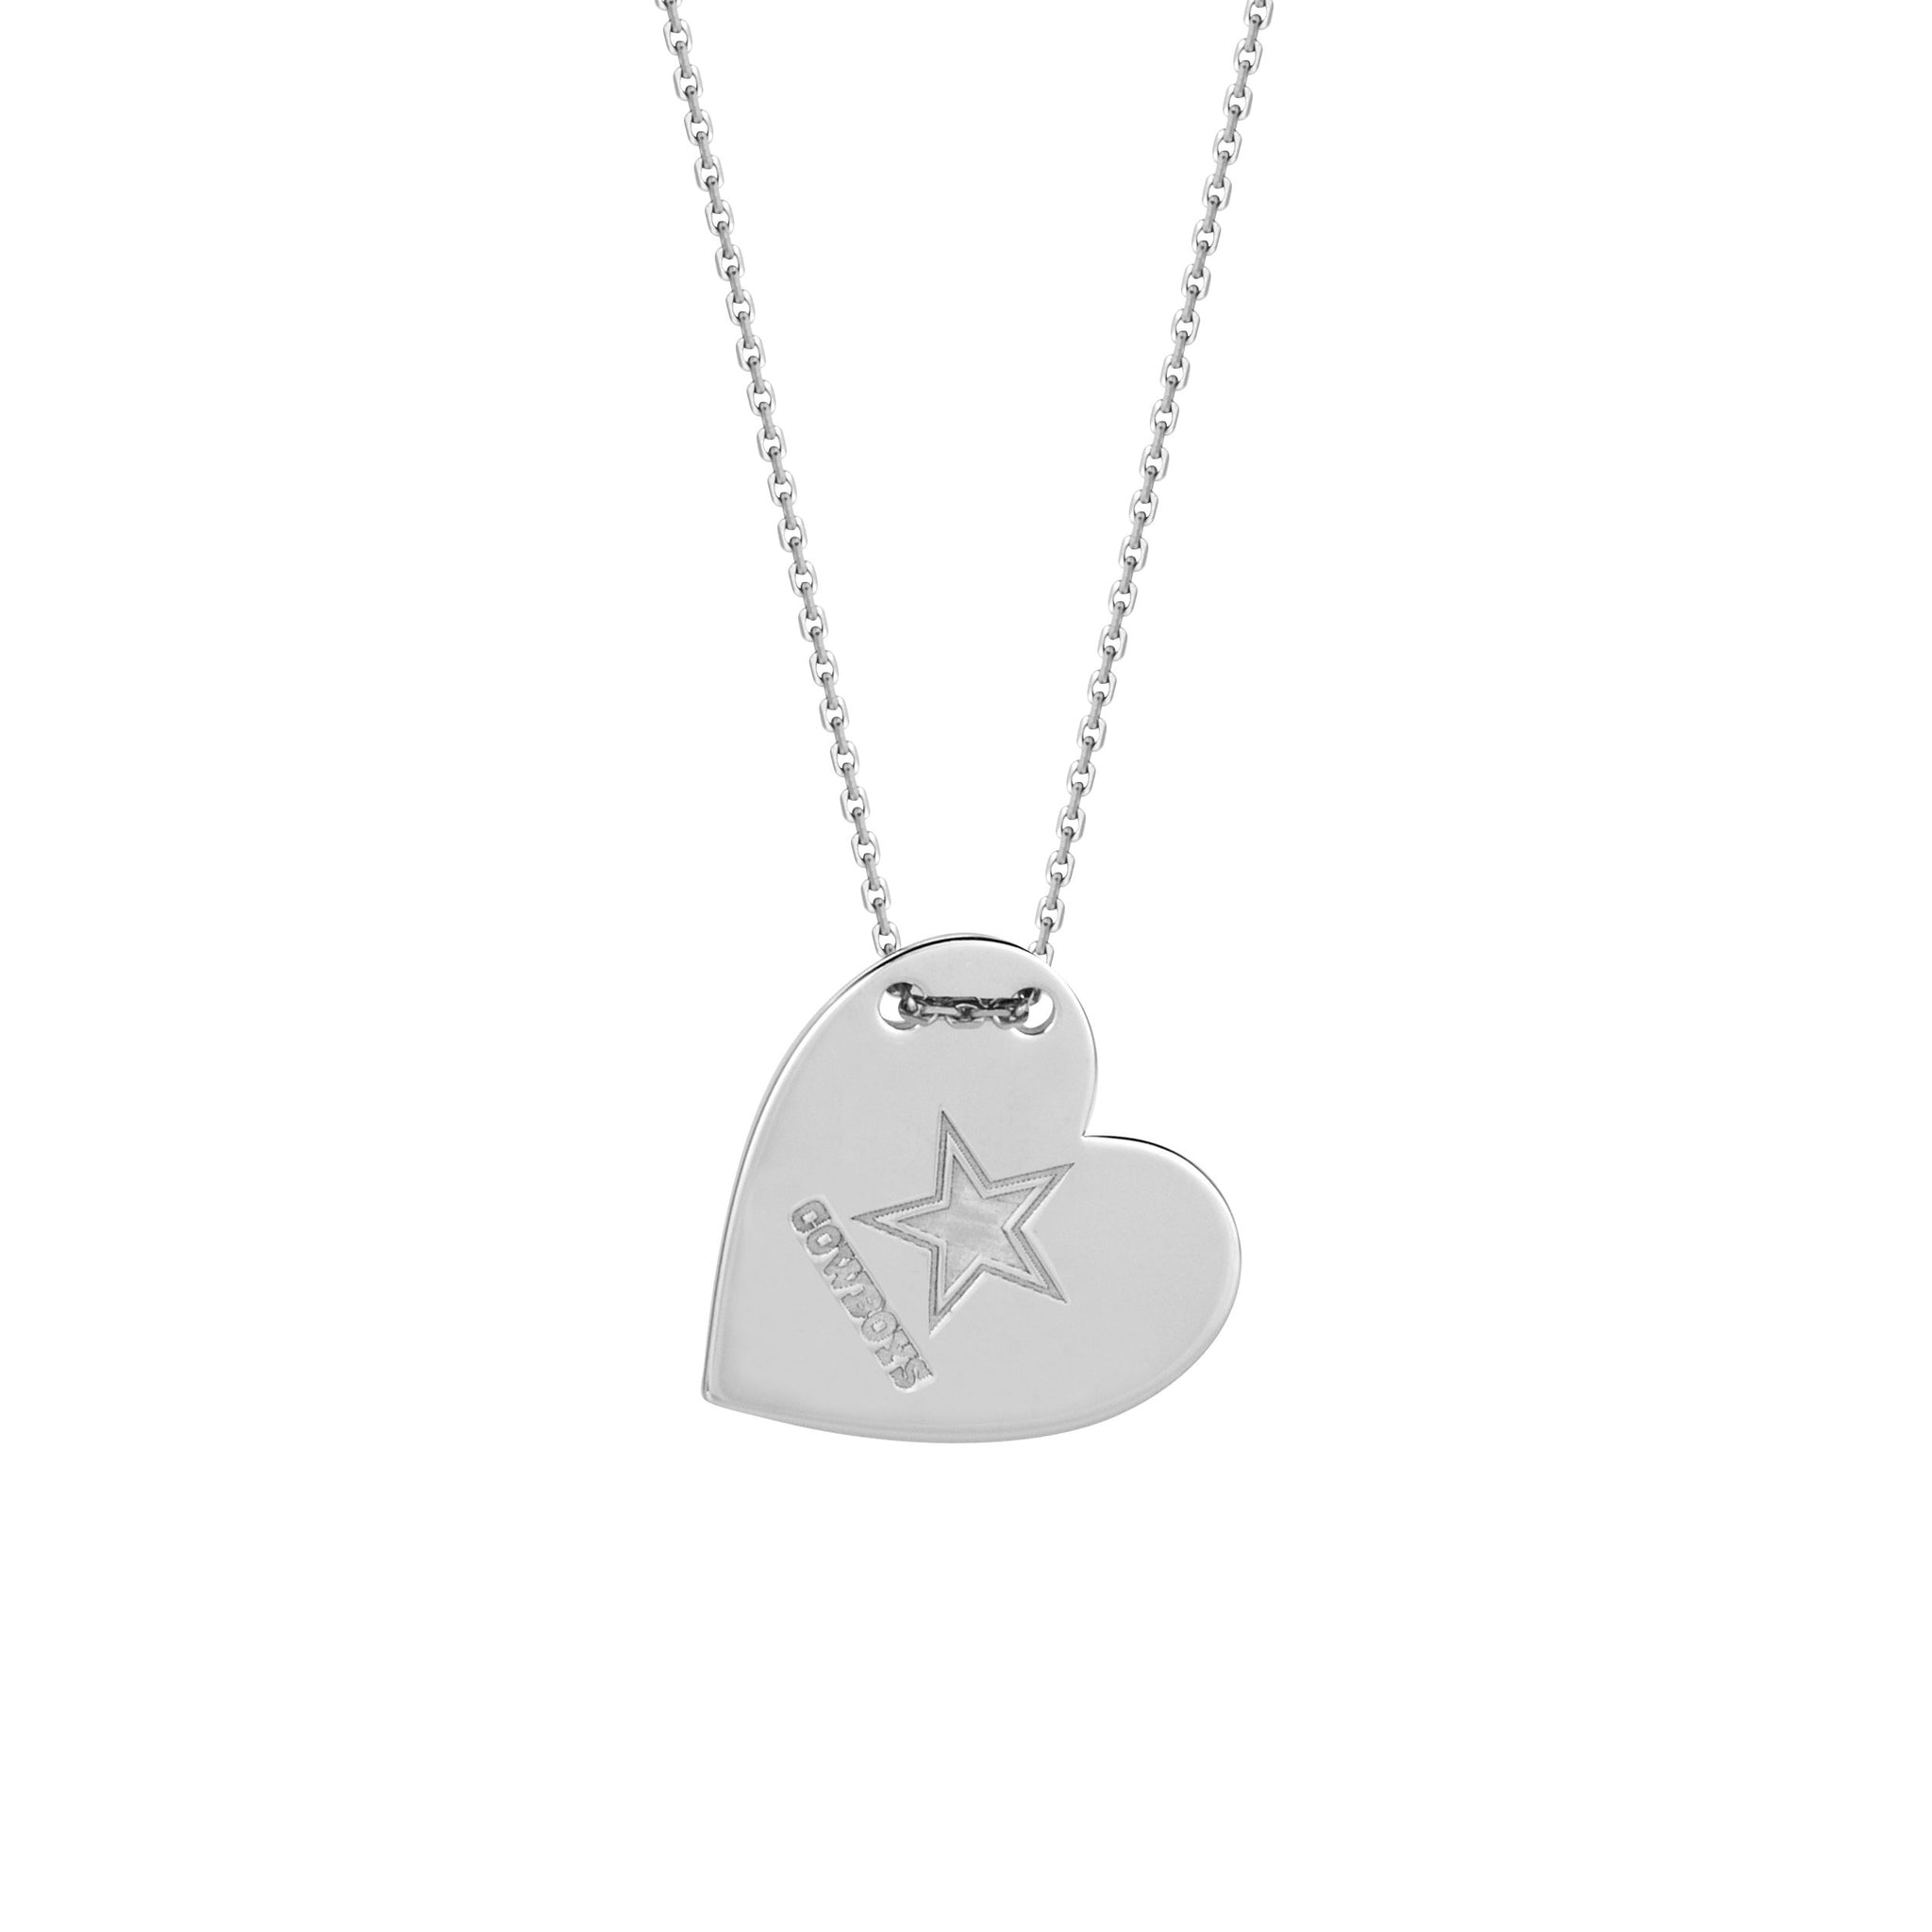 NFL Team Tailored Heart Necklace - Dallas Cowboys